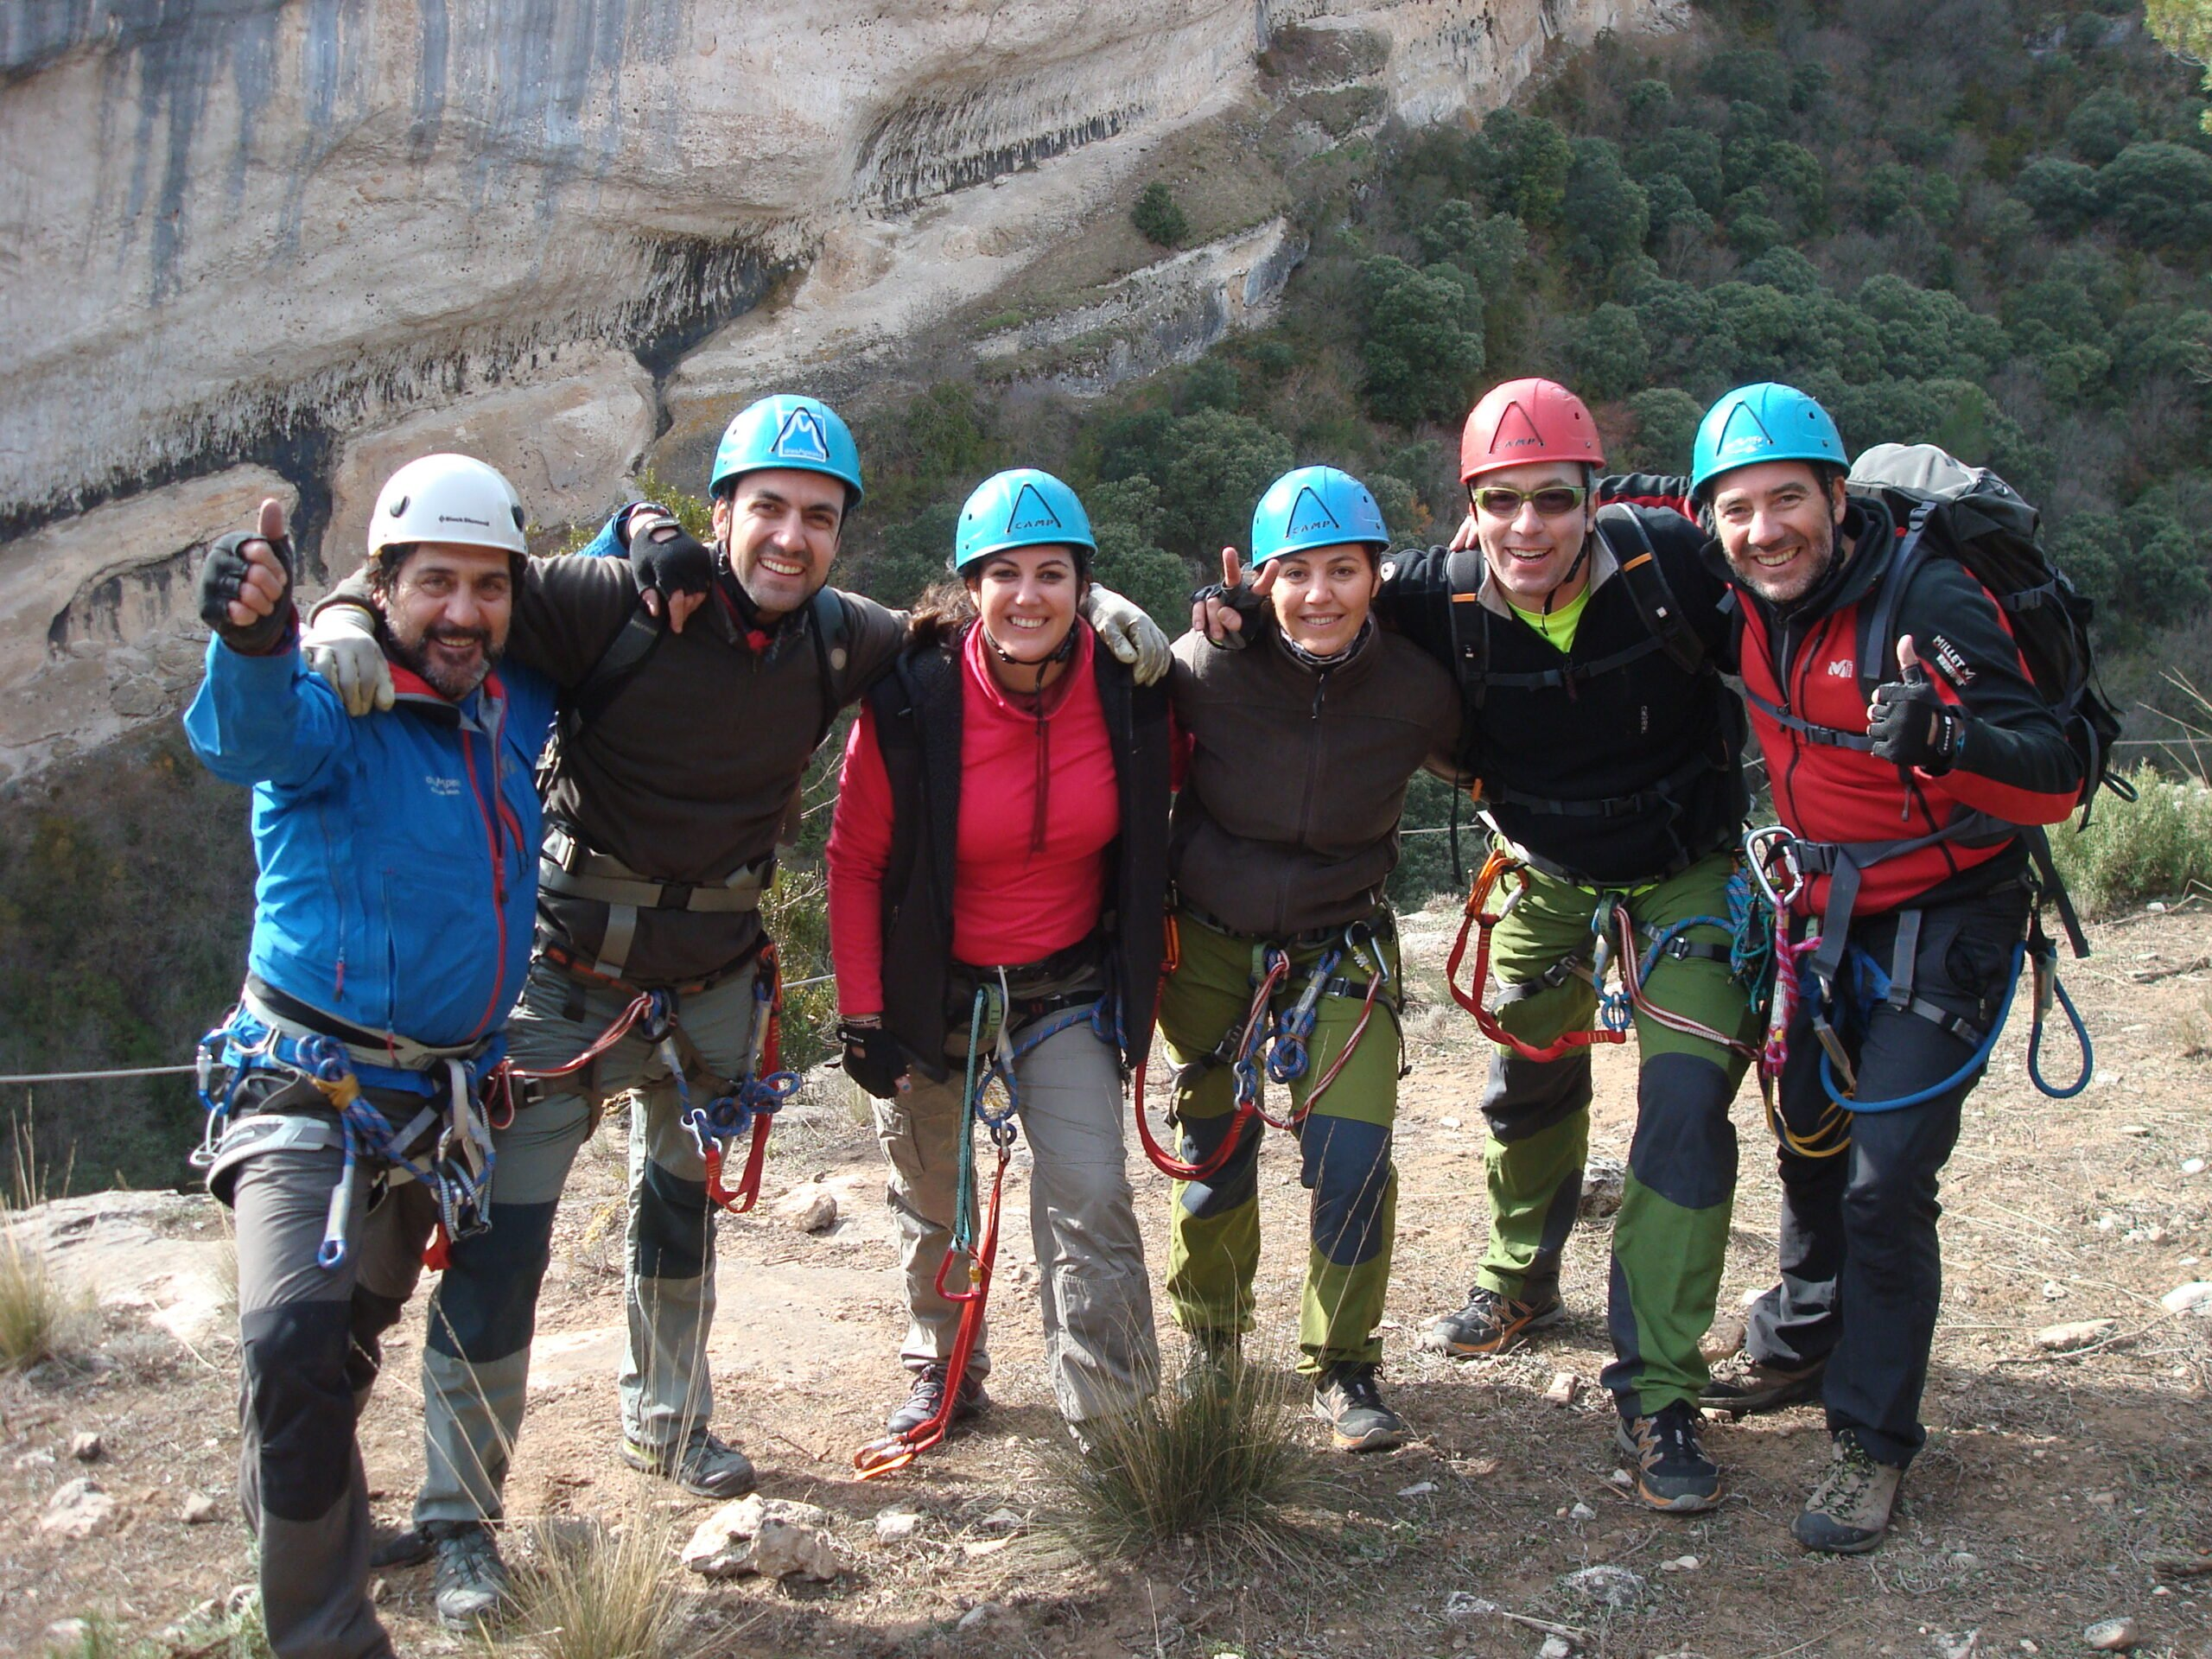 Fun Activity For All Family In Our Via Ferrata Adventure Tour From Madrid